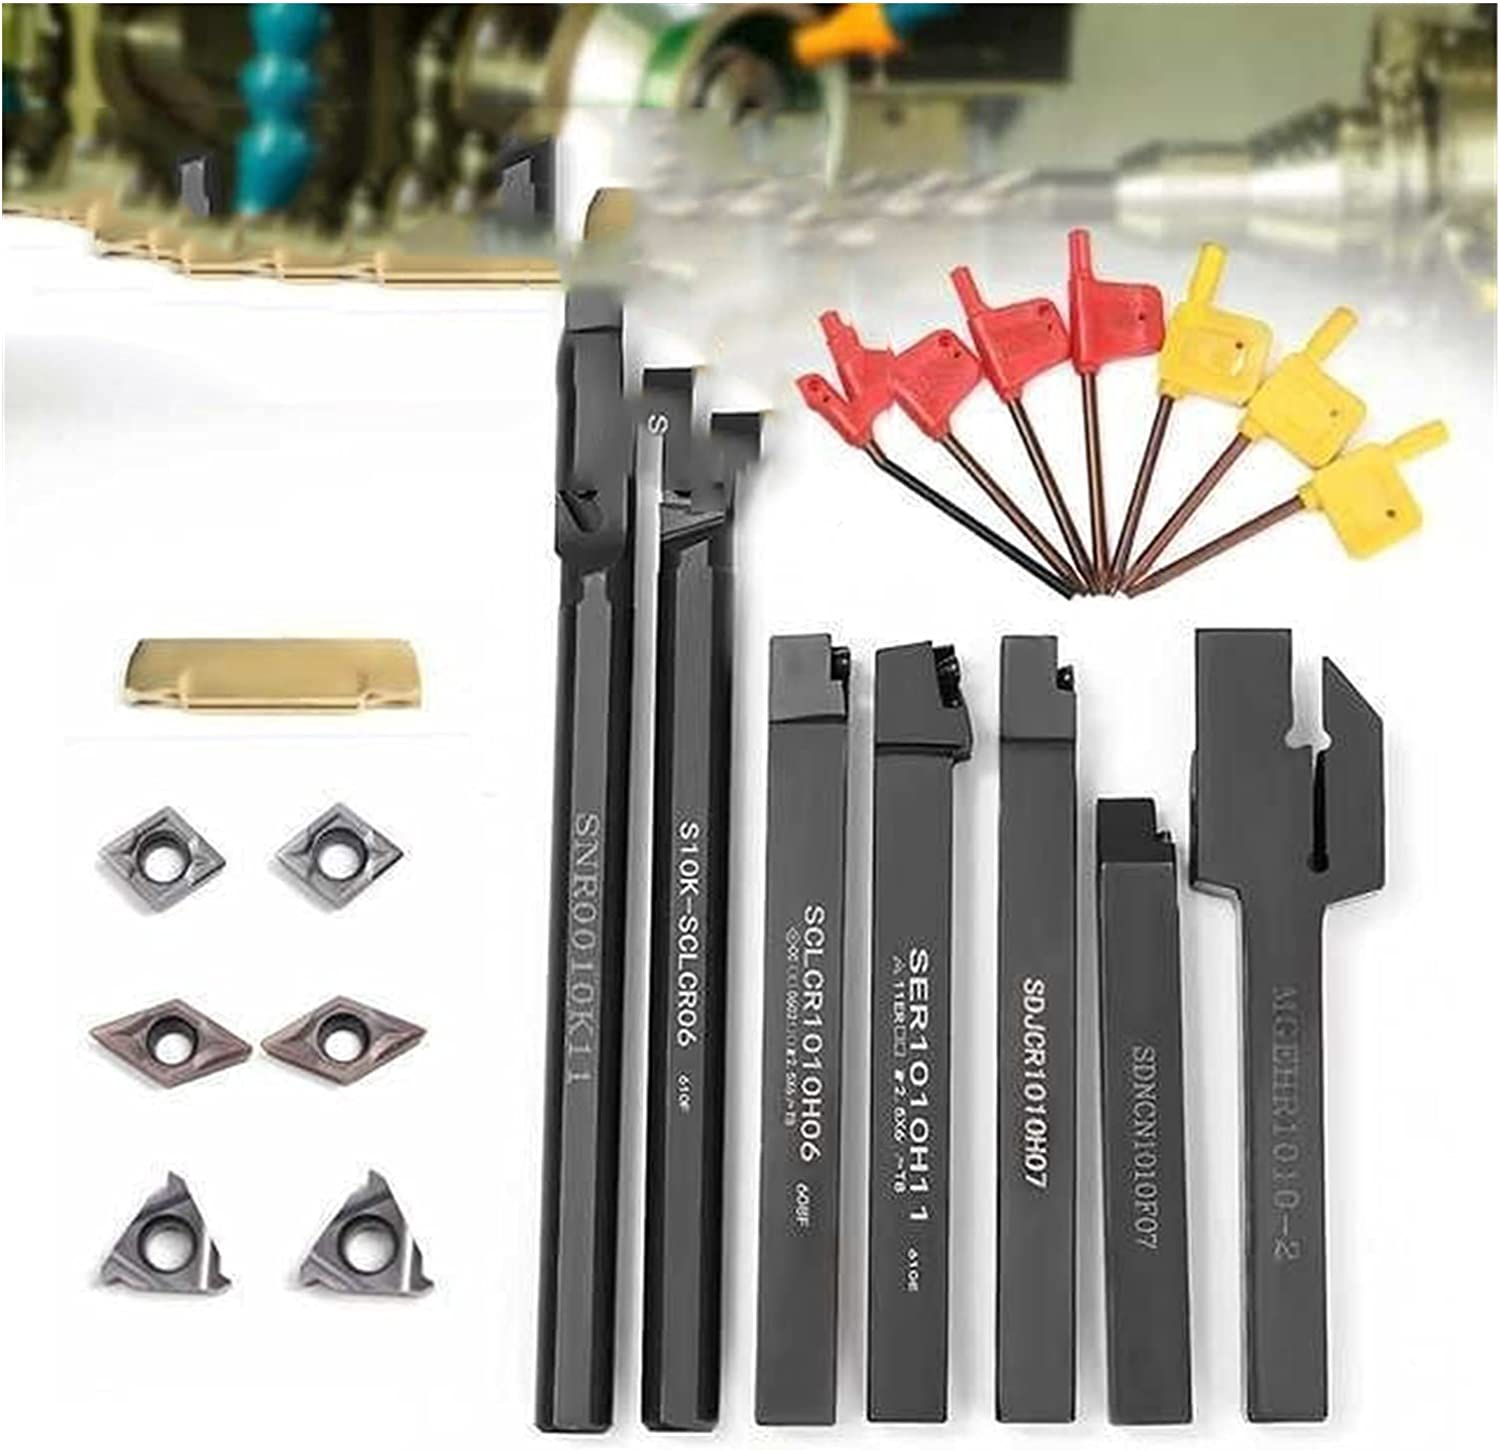 Choice ZDBH Lathe Woodworking Tool 10MM Inserts Free shipping New 12MM Shank Turn